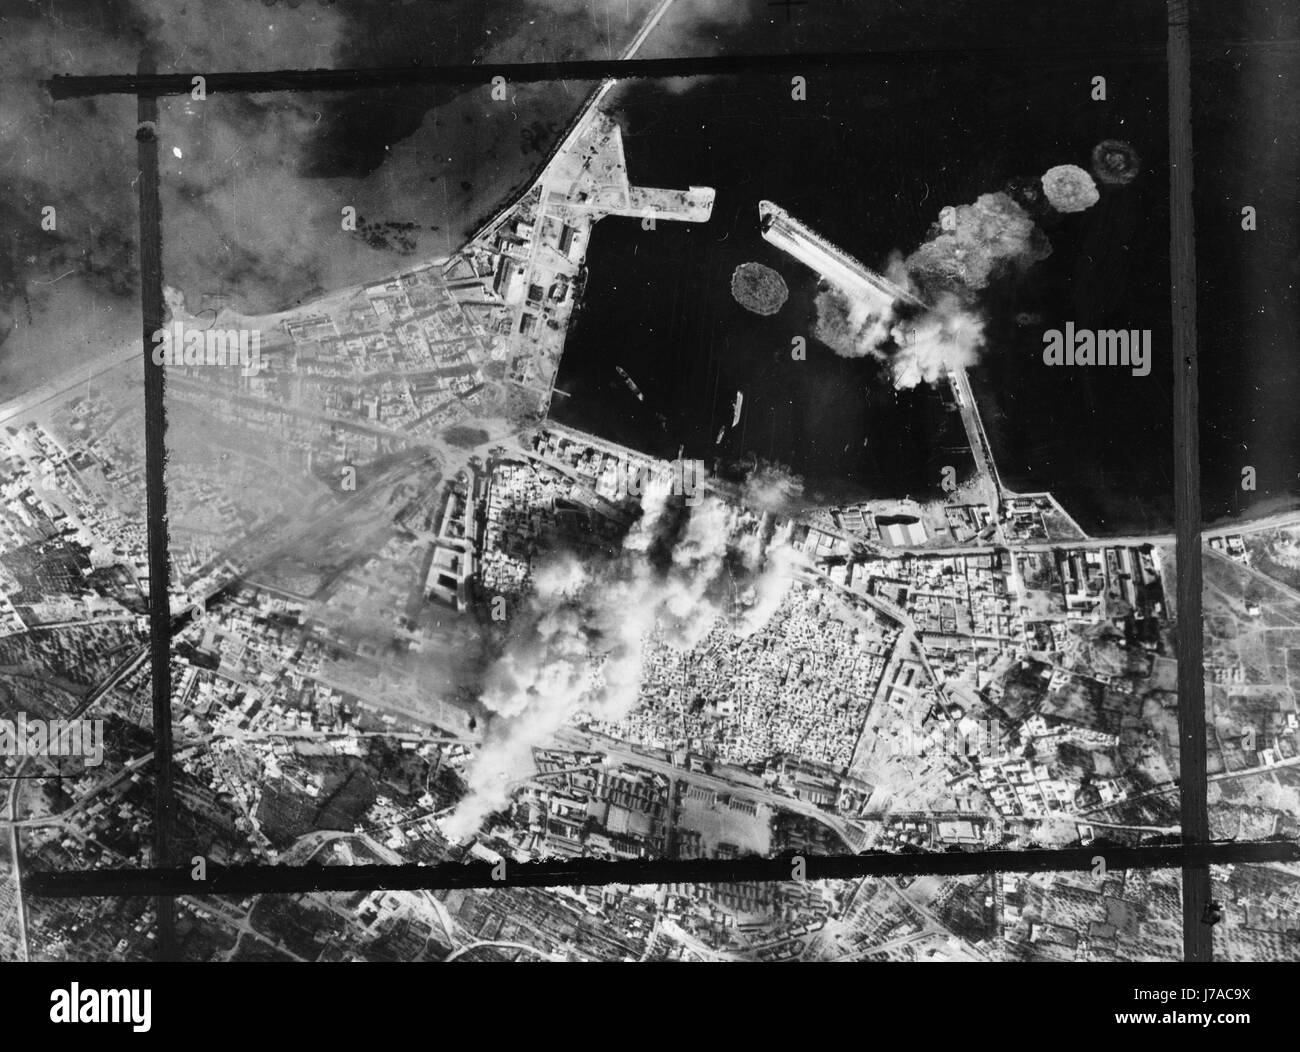 Aerial photograph showing direct bombing hits on a pierhead in Sousse, Tunisia, circa 1943. - Stock Image